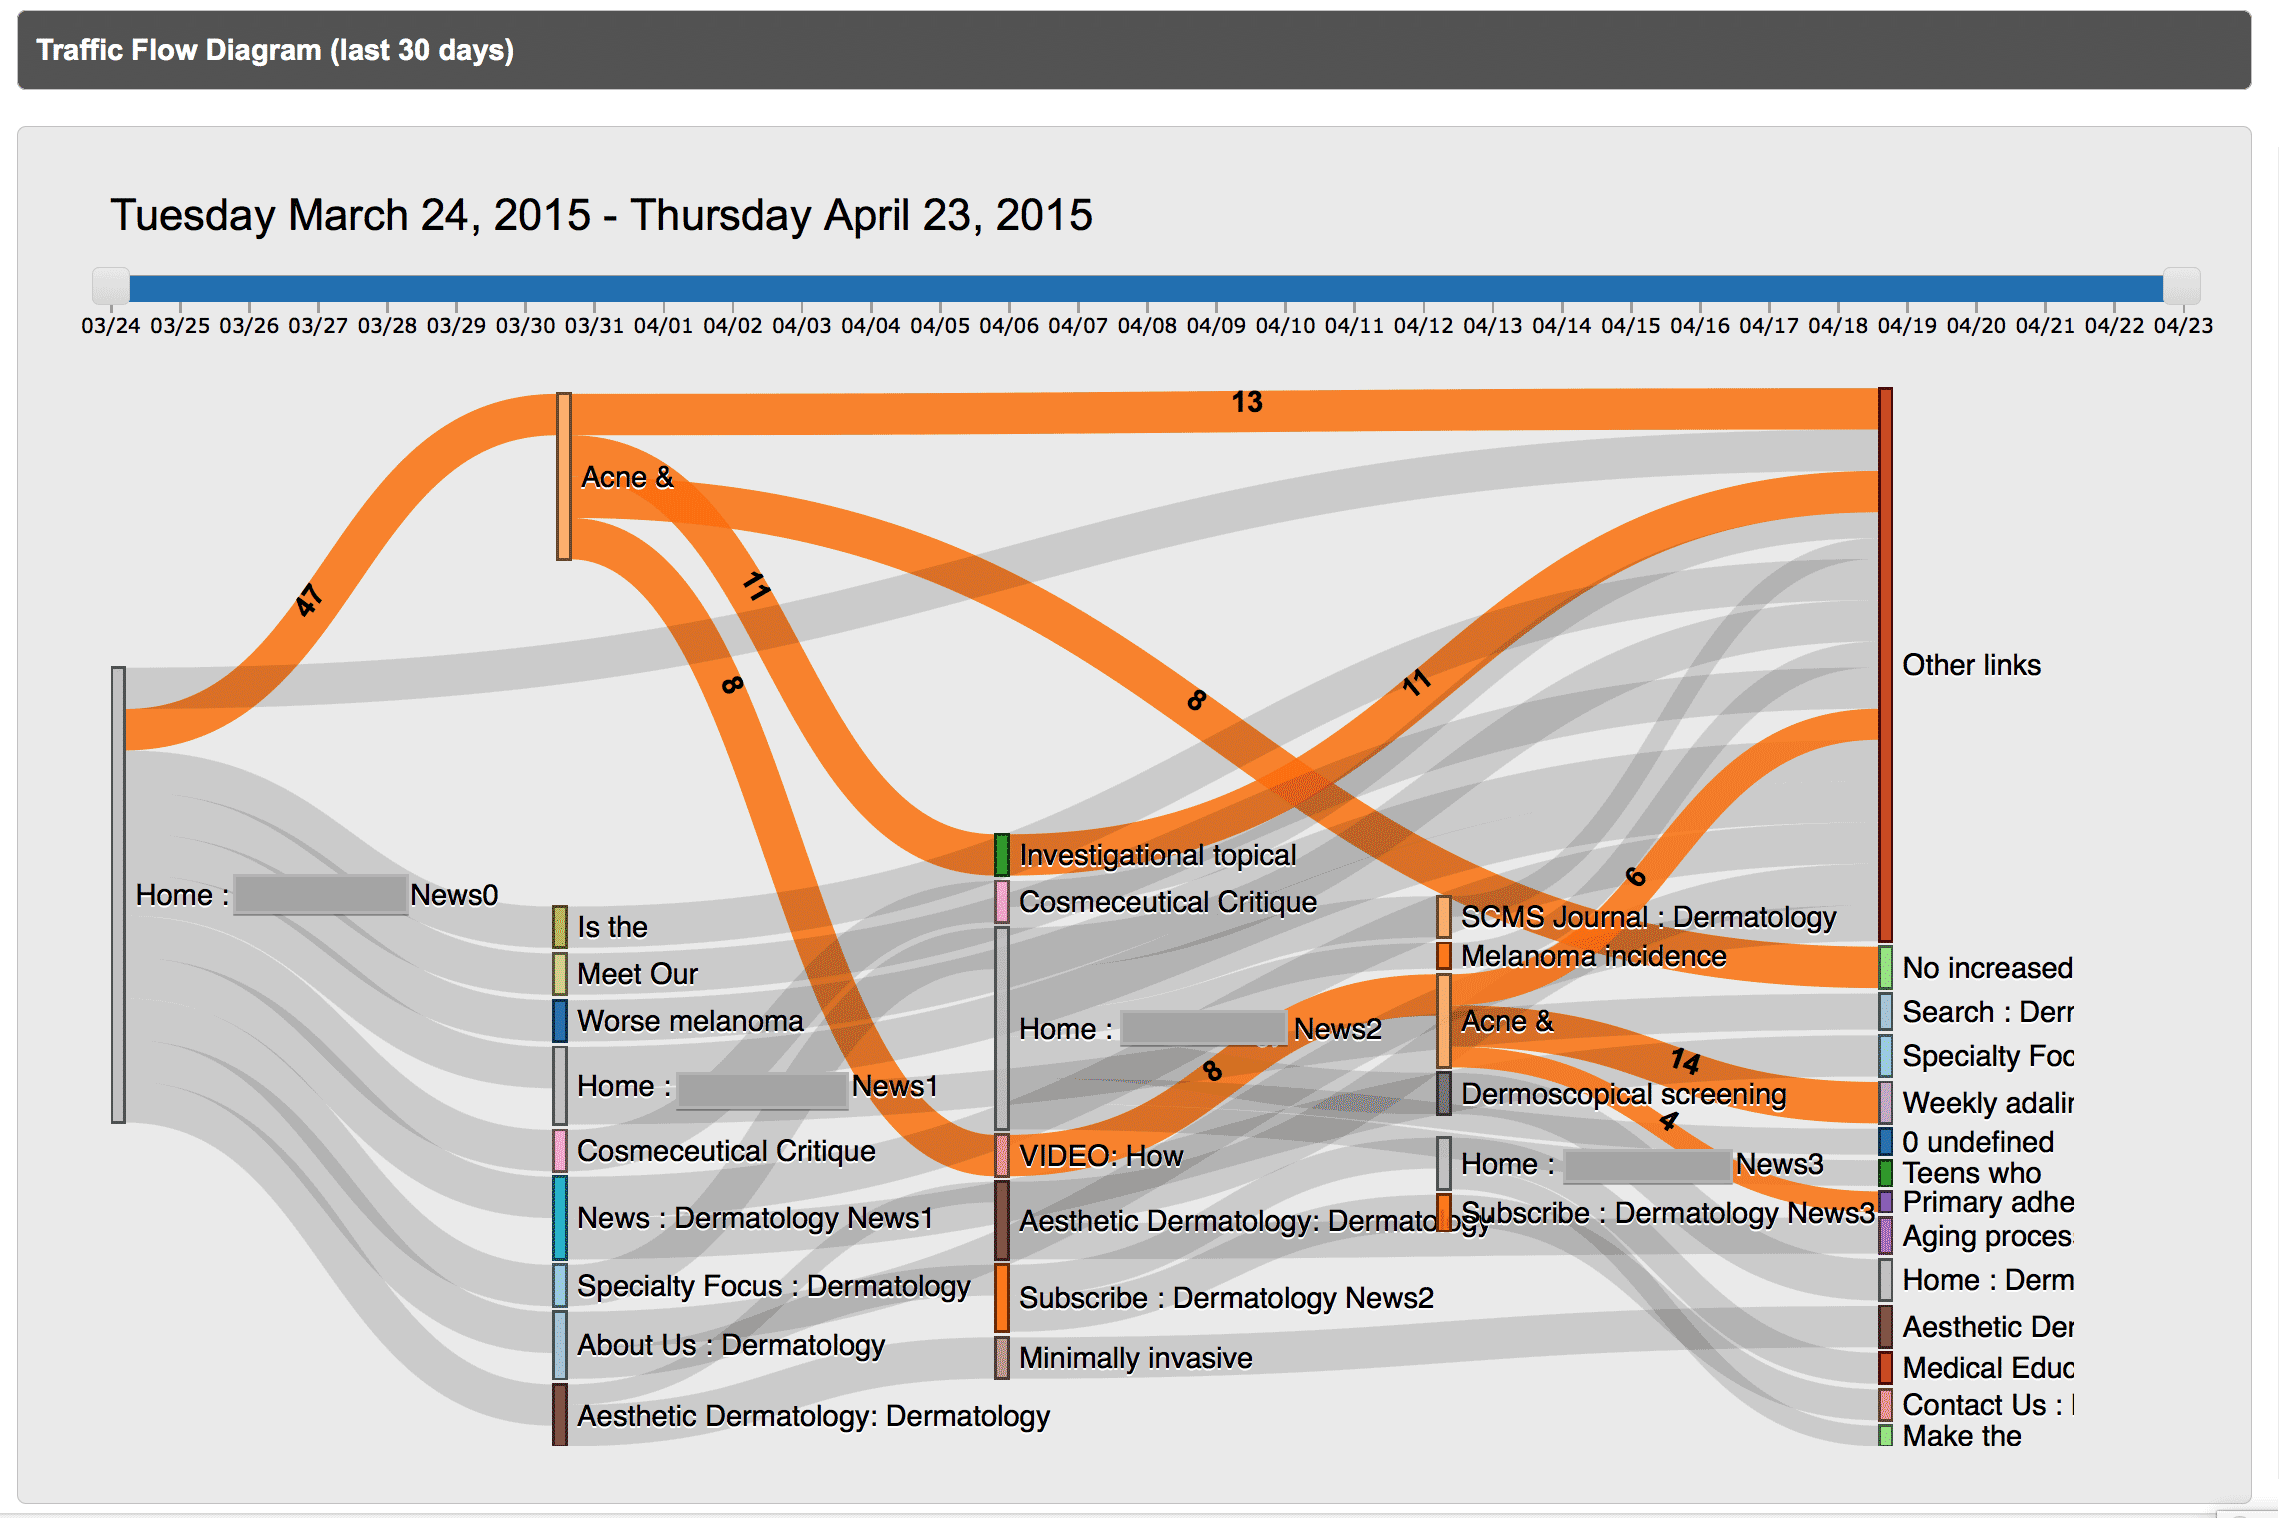 Visual Sankey traffic flow diagrams